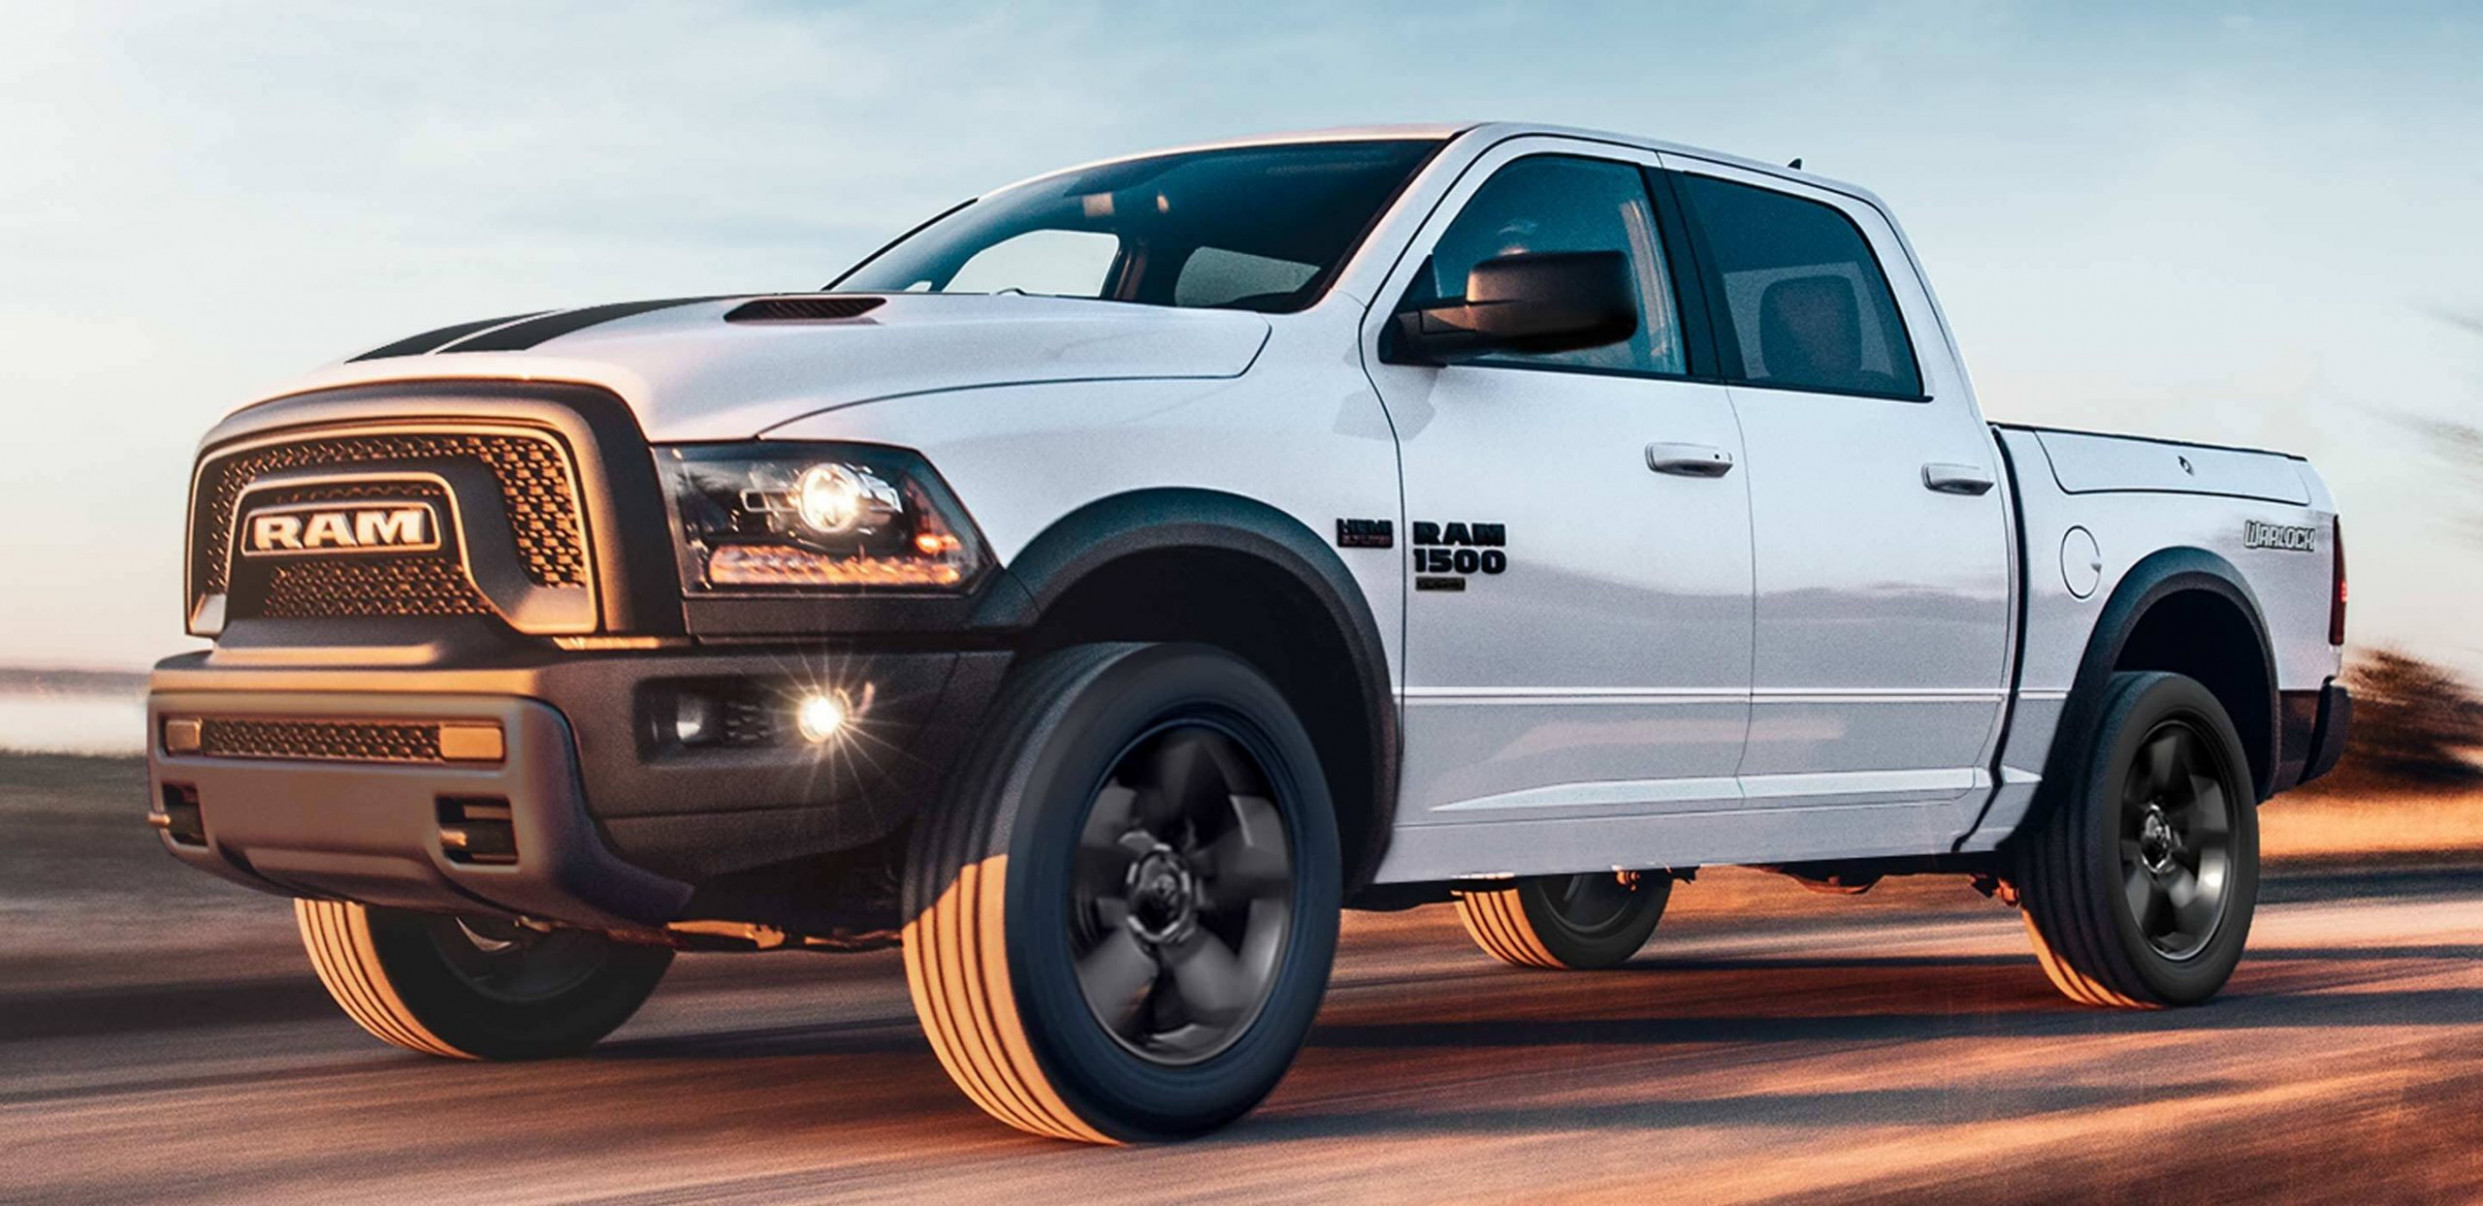 8 Ram 8 Classic Warlock Options & Pricing: - Mopar Insiders - 2020 dodge warlock price